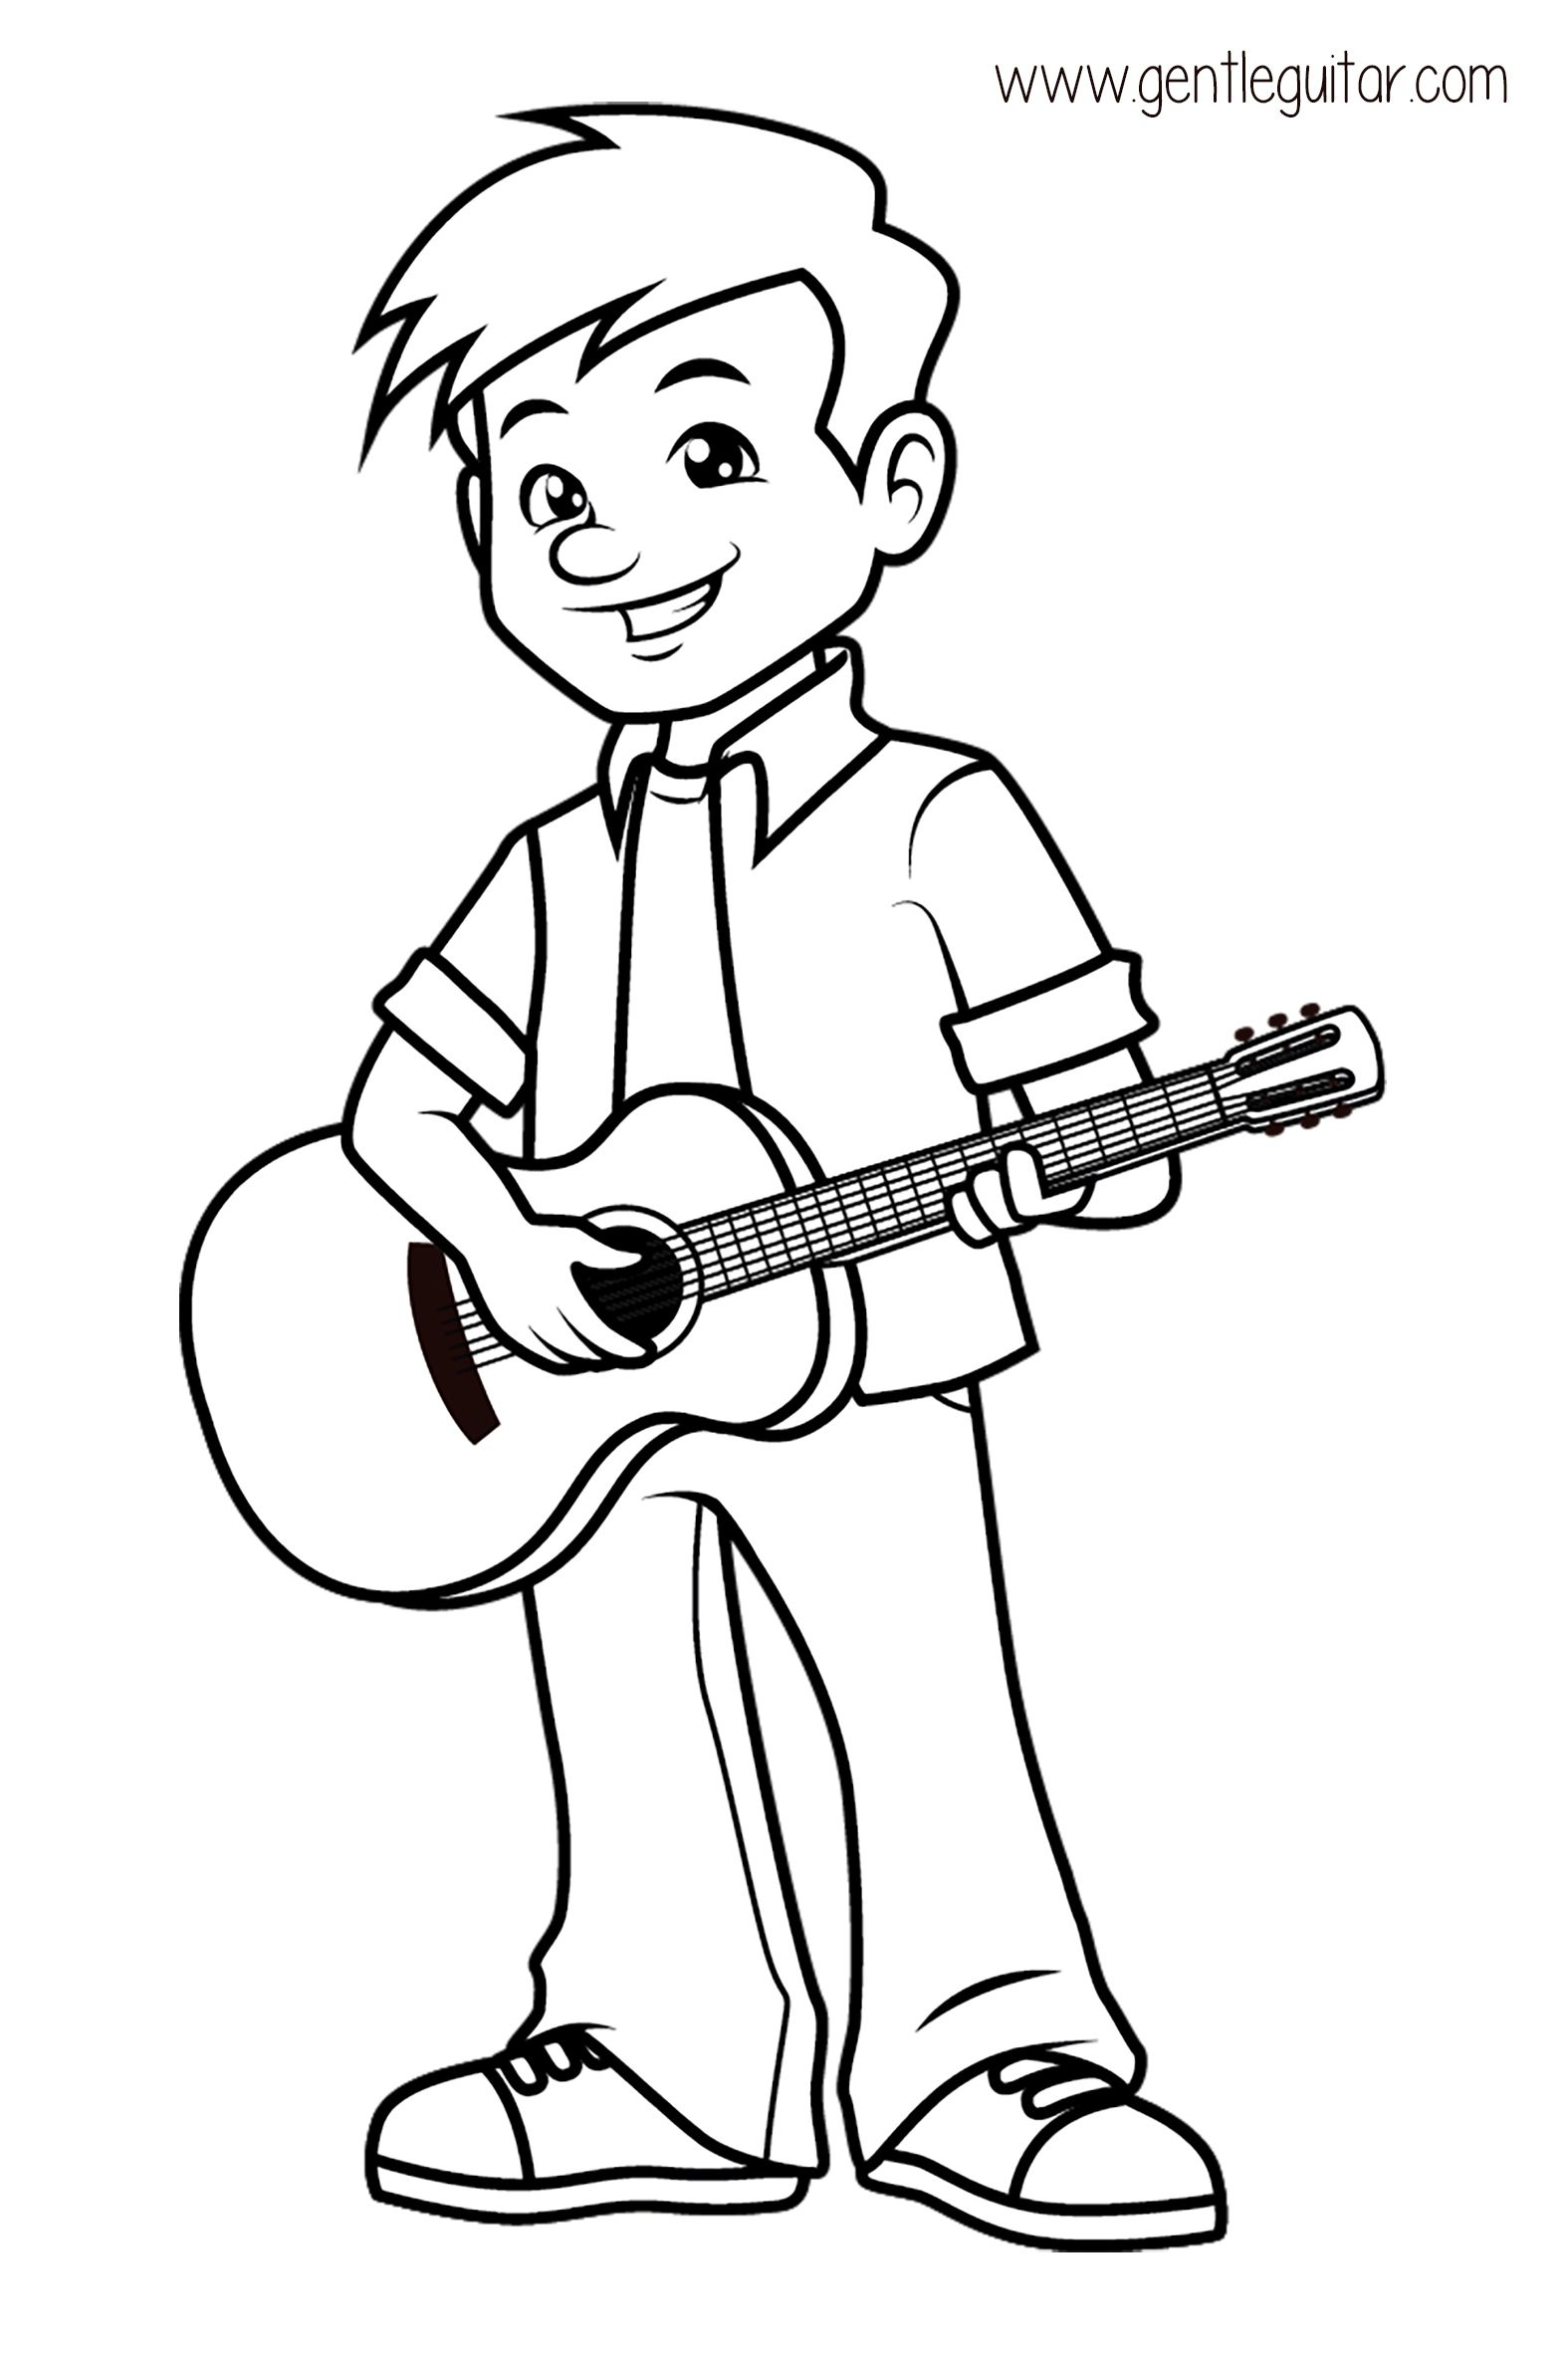 Coloring games to play - Coloring A Boy Playing Guitar Coloring Prepares Children For Formal Music Tuition By Developing Their